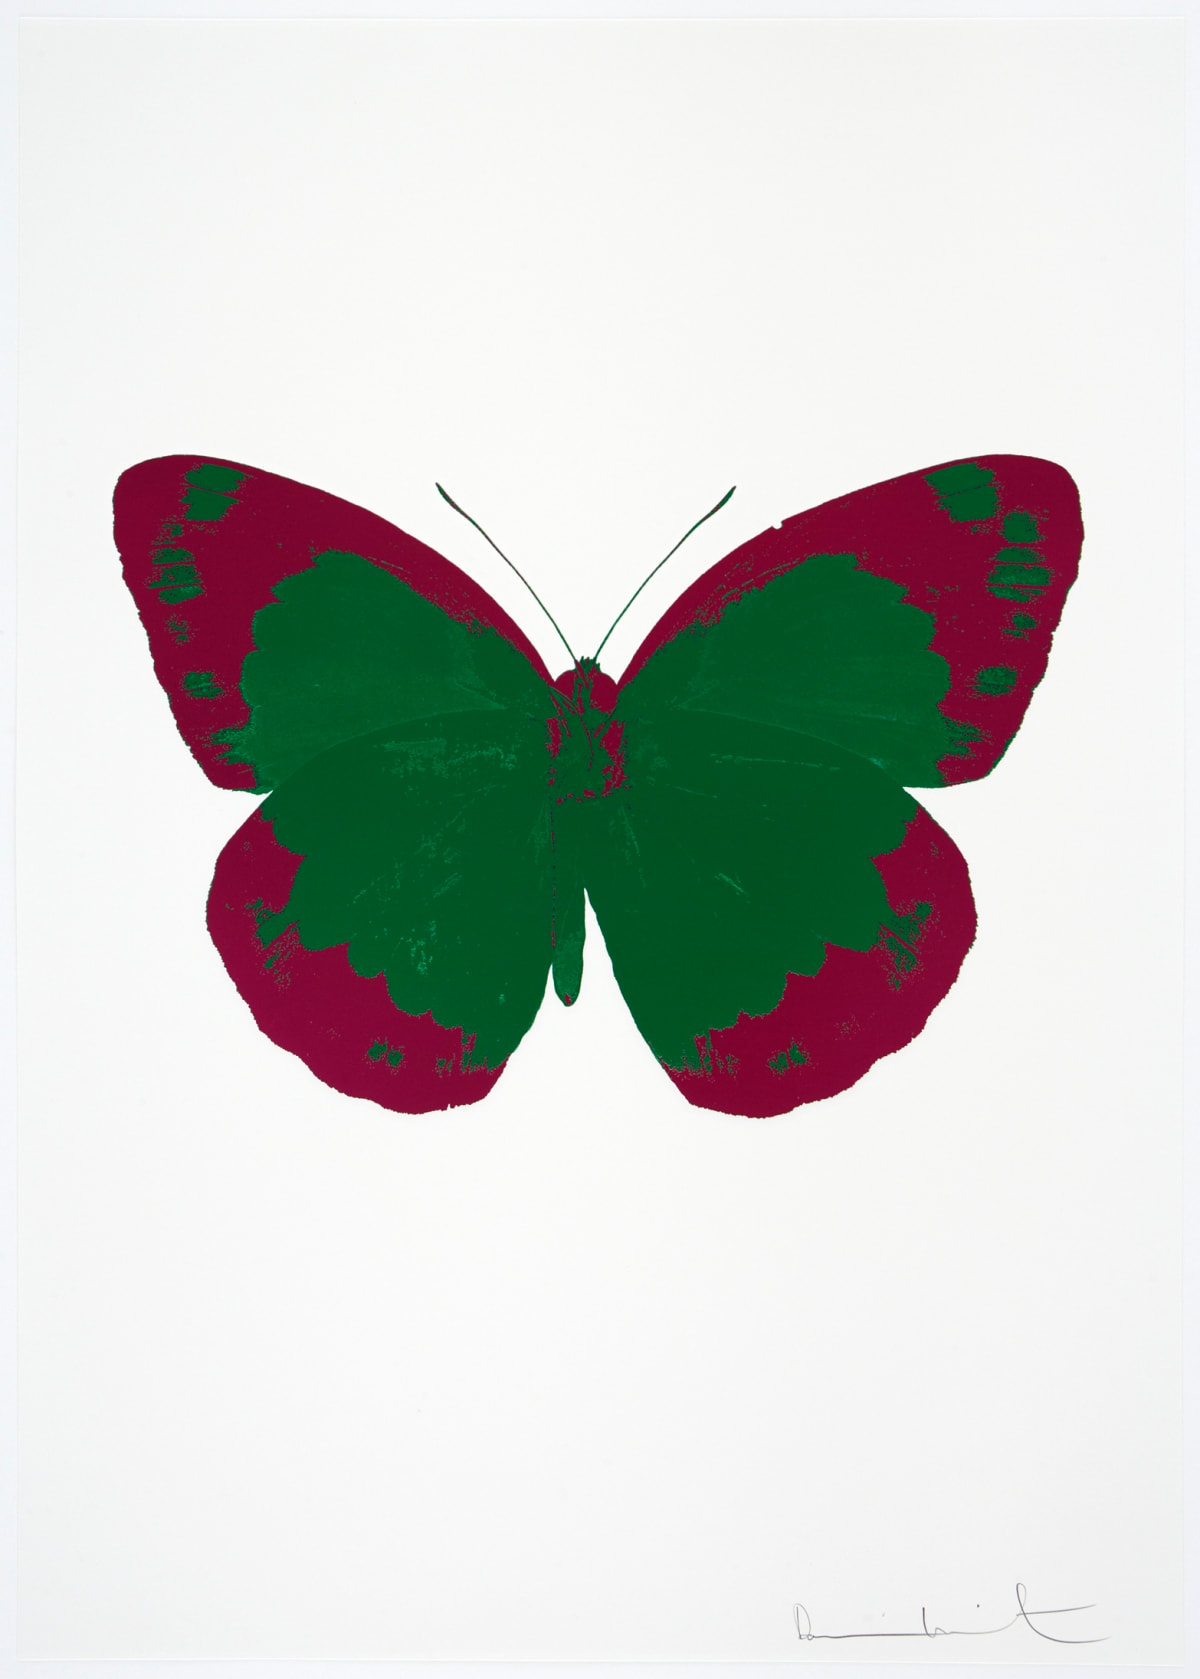 Damien Hirst The Souls II - Emerald Green/Fuchsia Pink/Blind Impression, 2010 2 colour foil block on 300gsm Arches 88 archival paper. Signed and numbered. Published by Paul Stolper and Other Criteria 72 x 51cm OC7855 / 658-38 Edition of 15